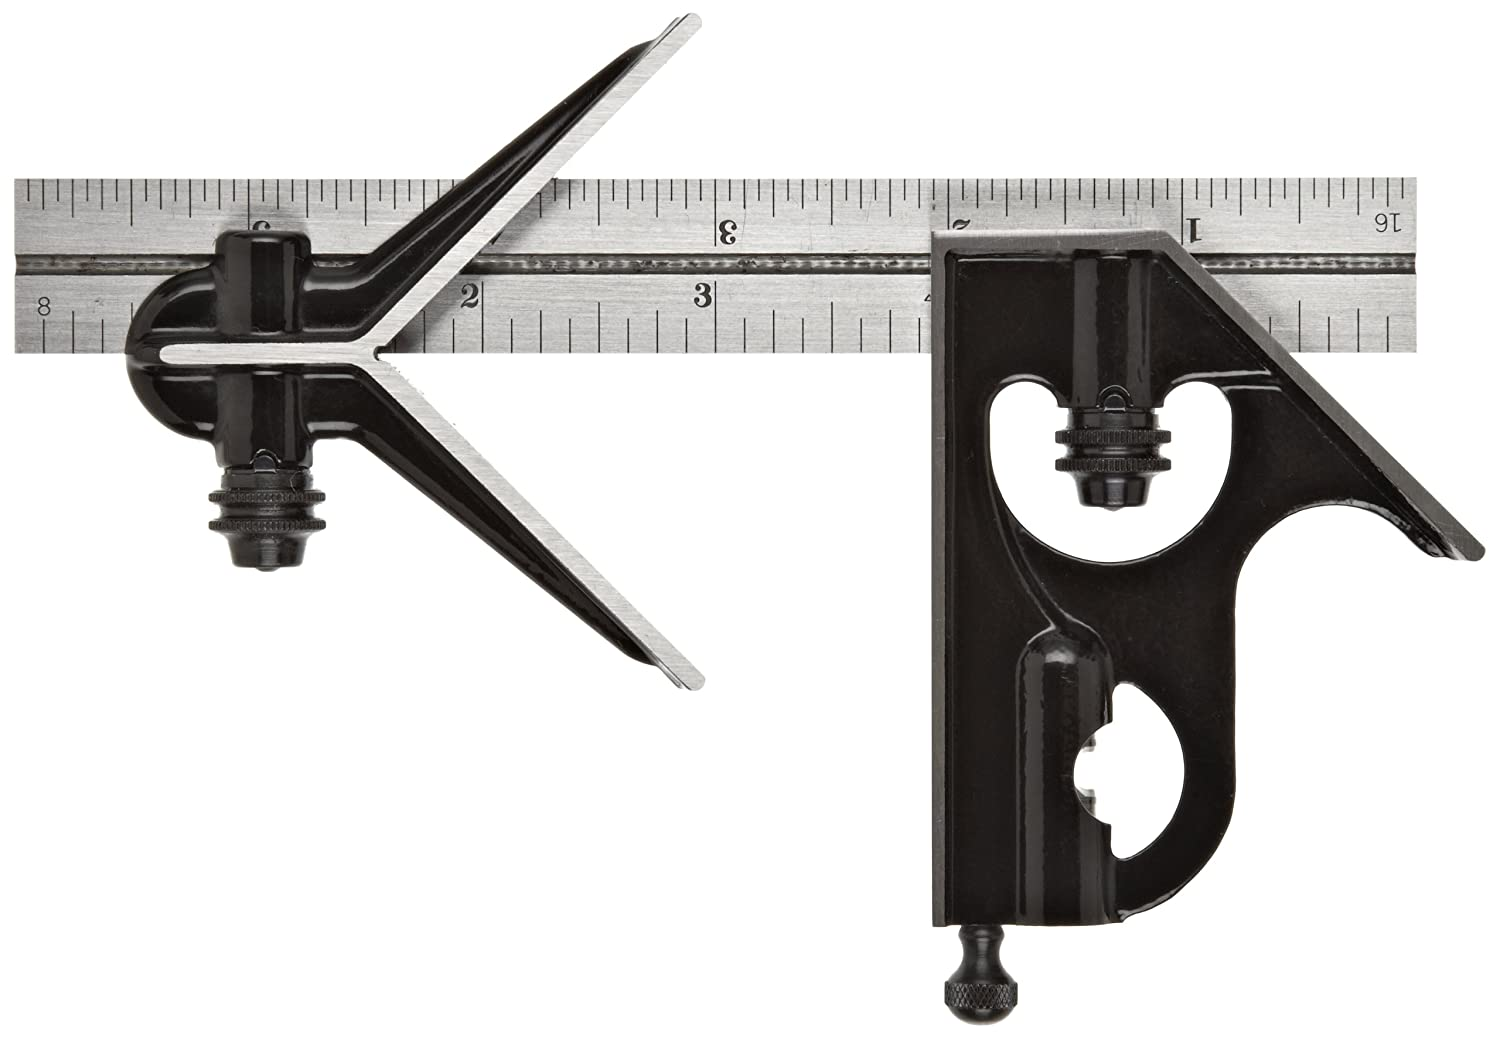 16R Graduation 12 Size 12 Size Hardened Steel Square And Center Heads With Regular Blade Combination Square Smooth Black Enamel Finish Starrett 33HC-12-16R Forged